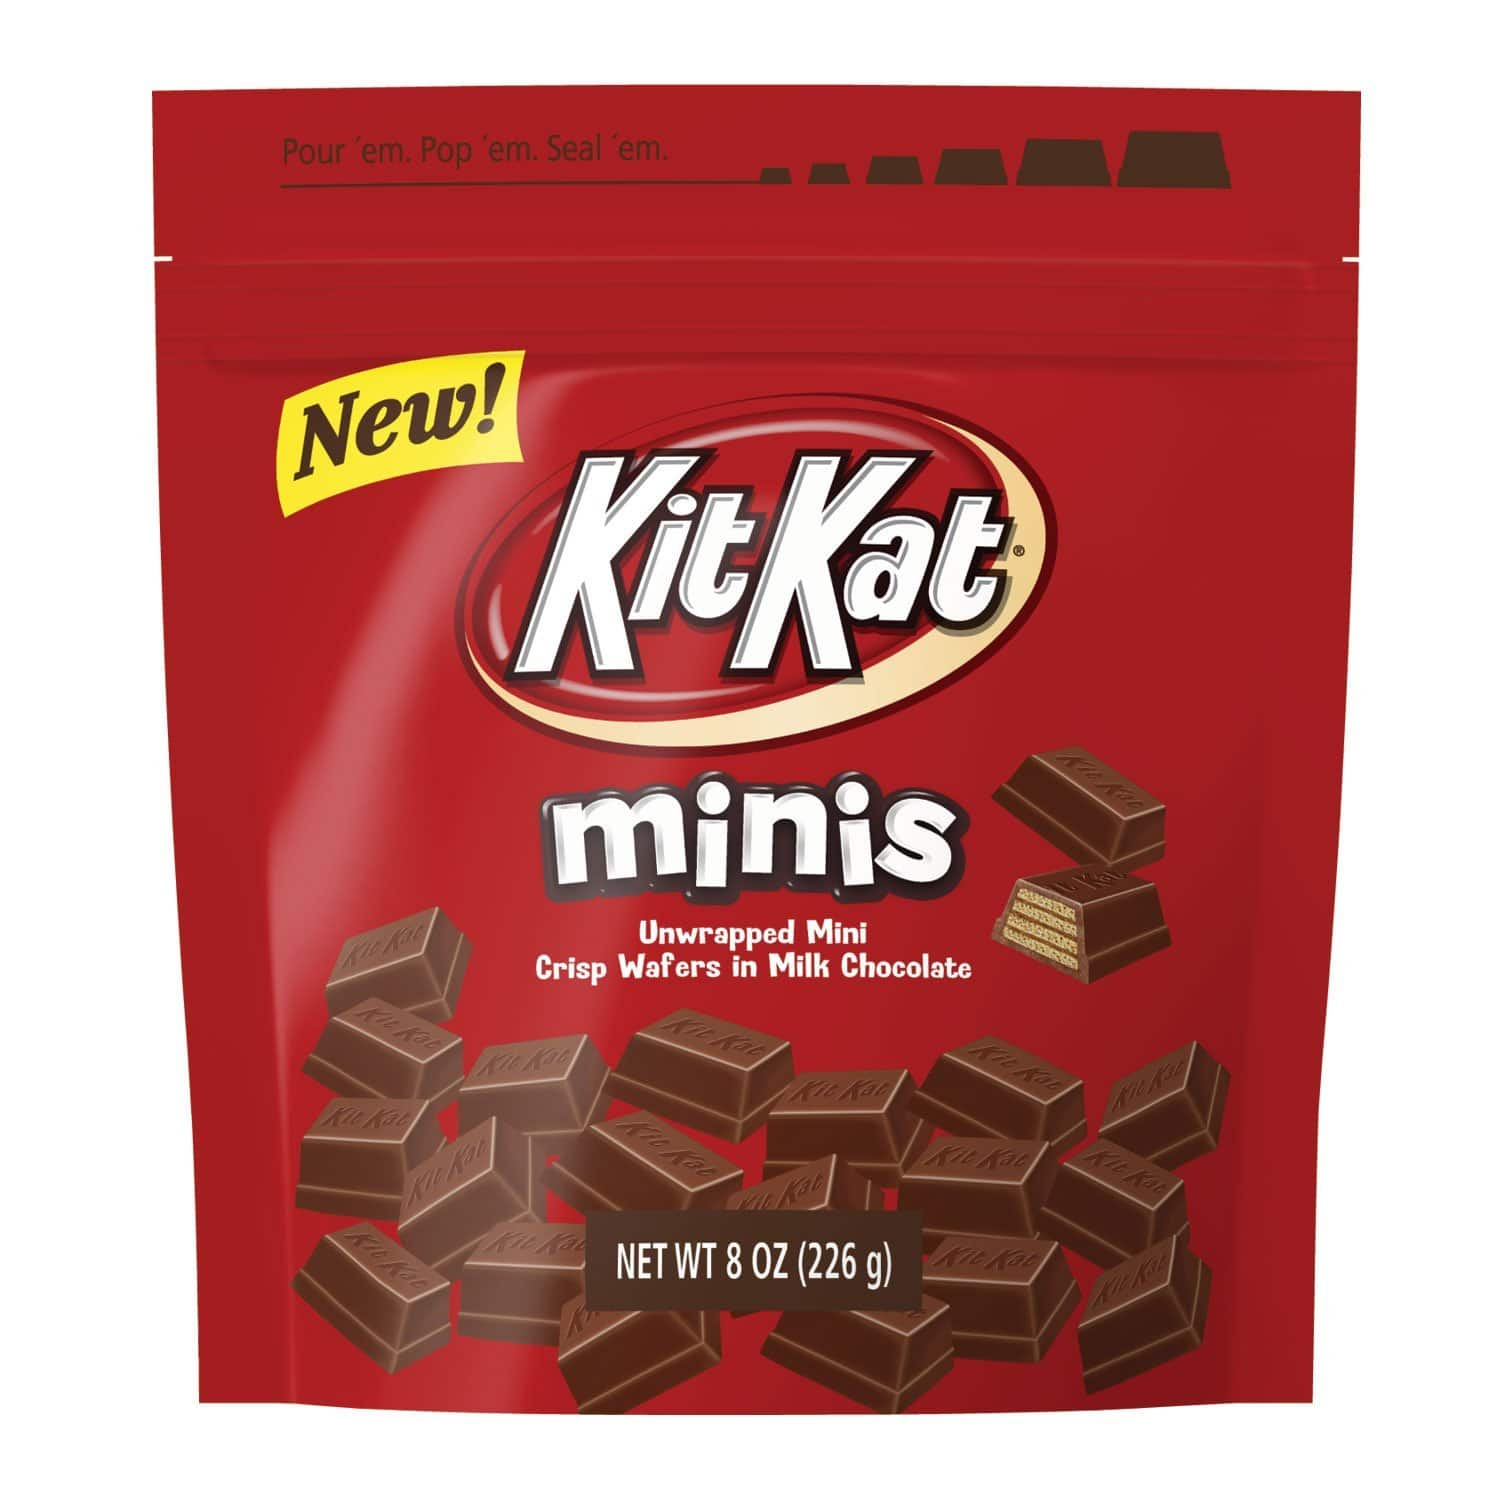 KIT KAT Minis Crisp Wafers in Milk Chocolate, (8-Ounce Pouch) $2.66 FS with Amazon Prime Member